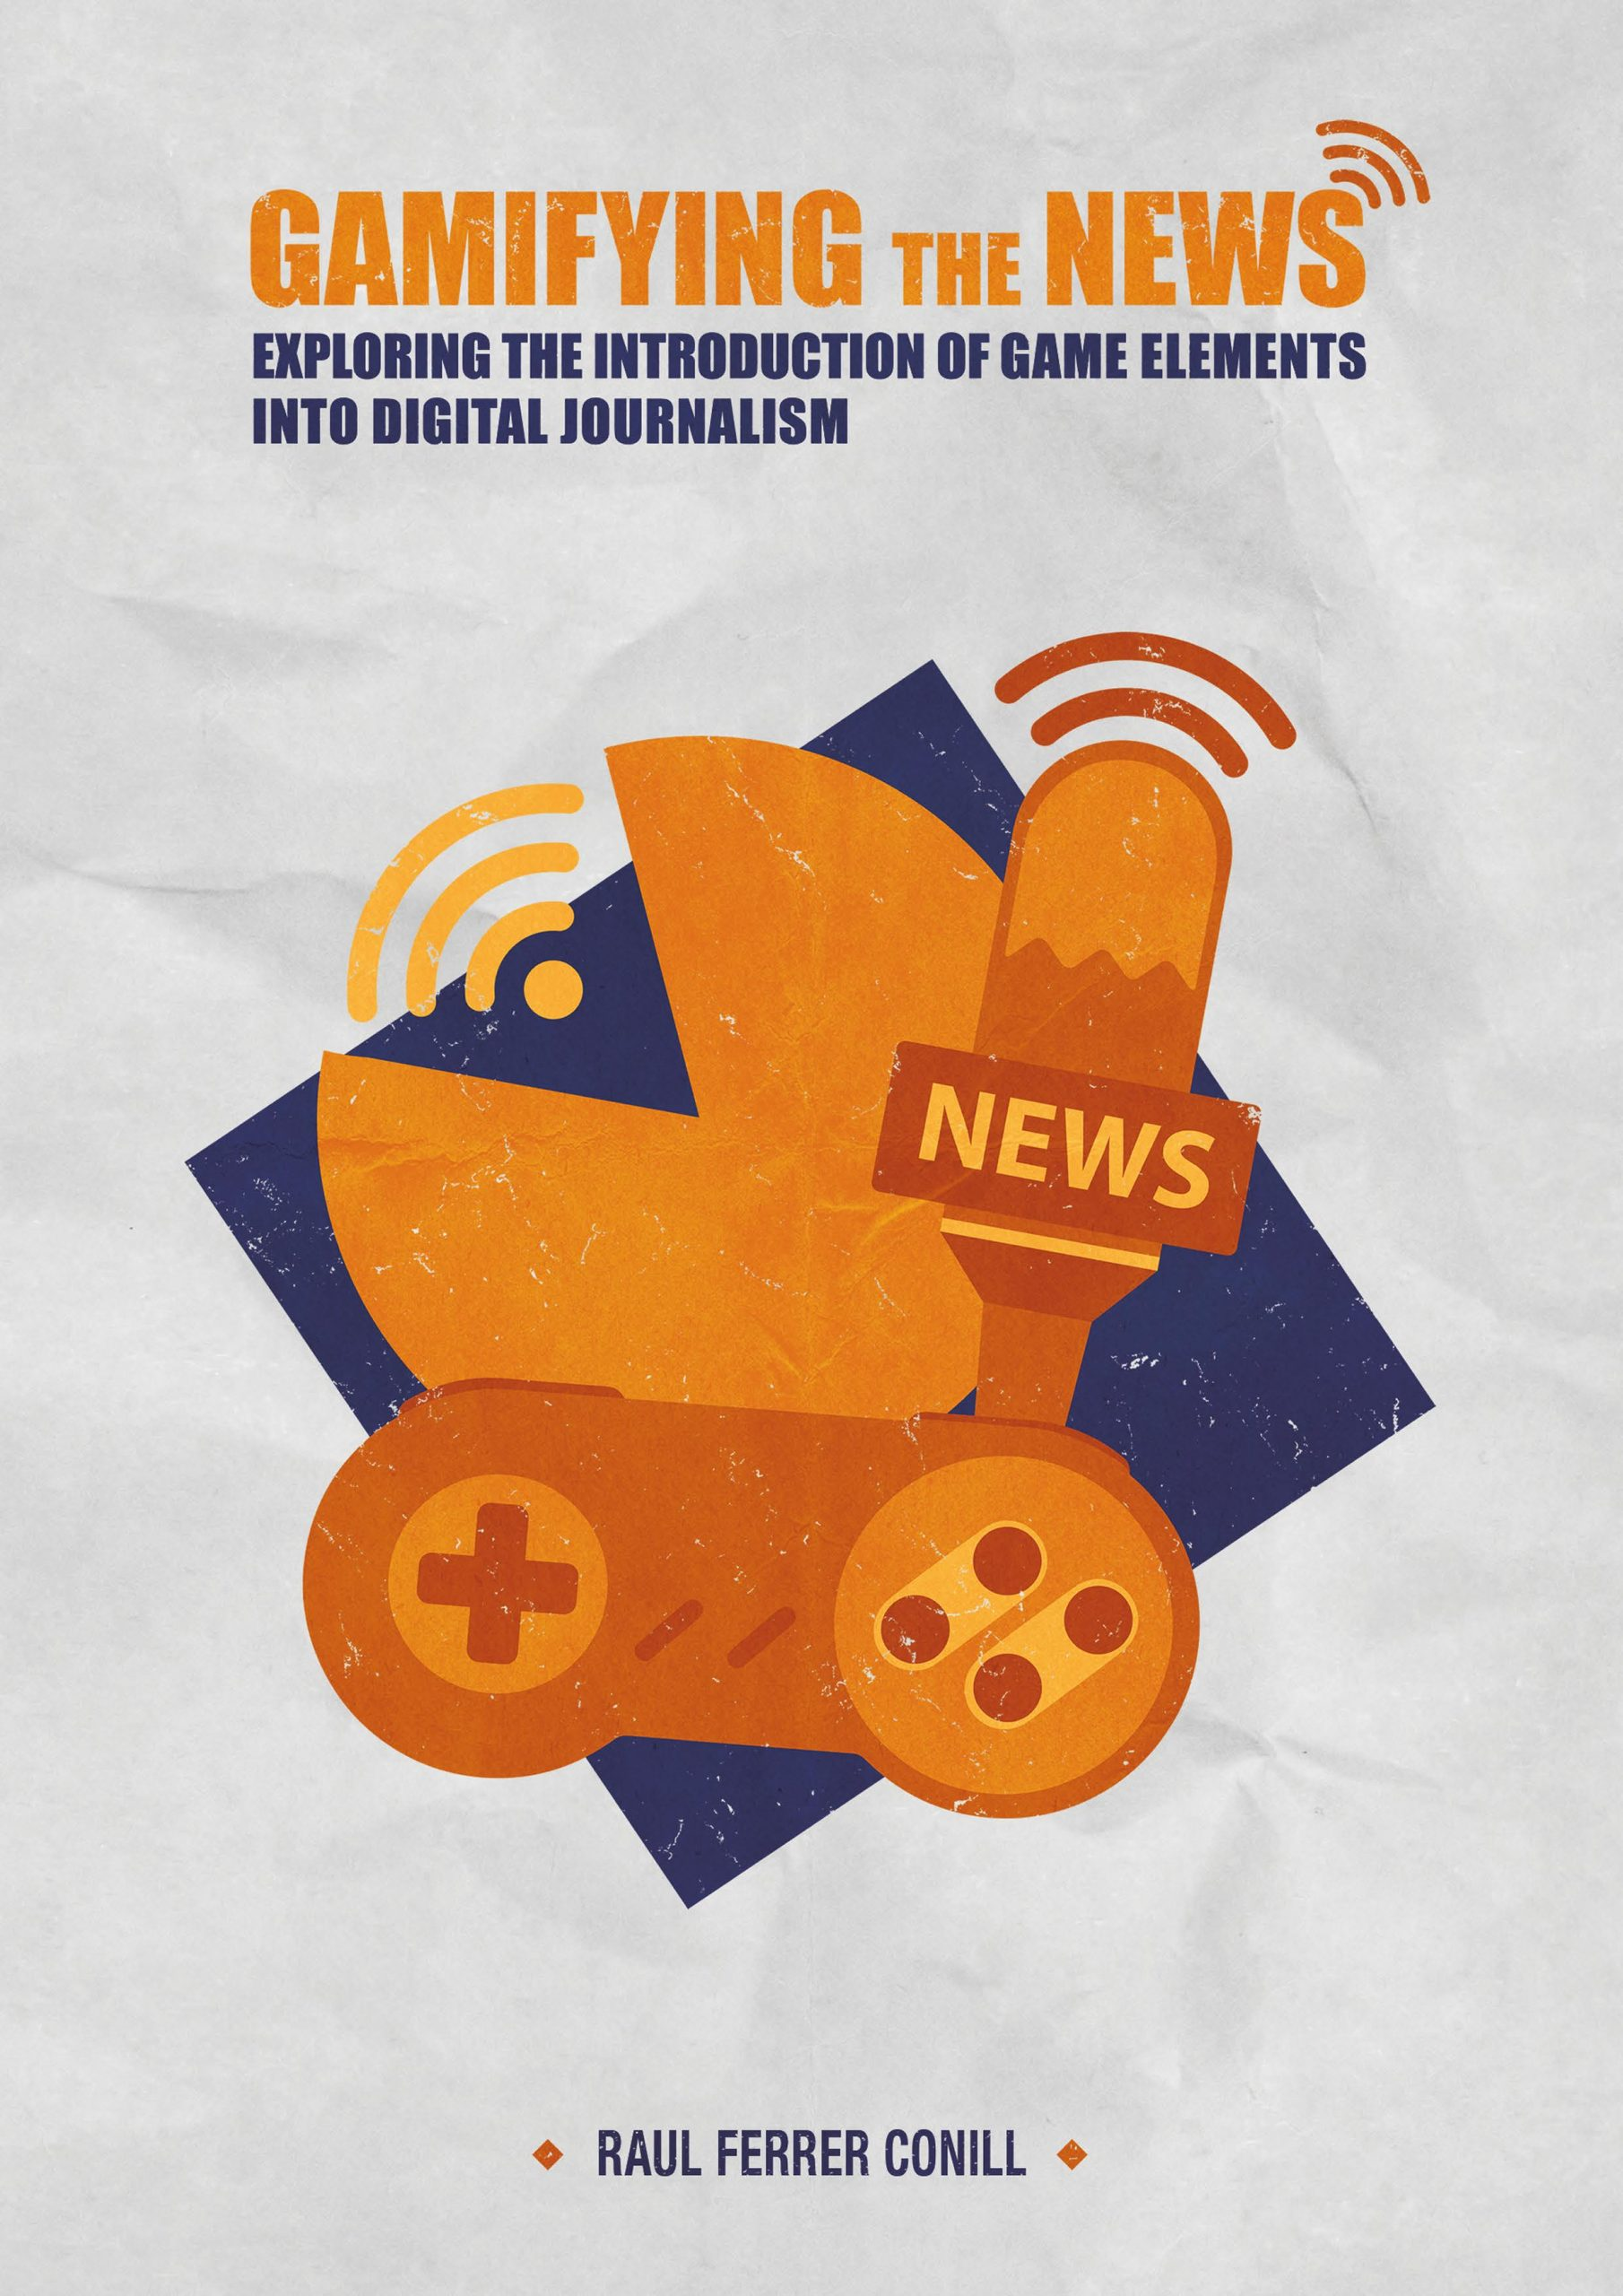 Gamifying the News